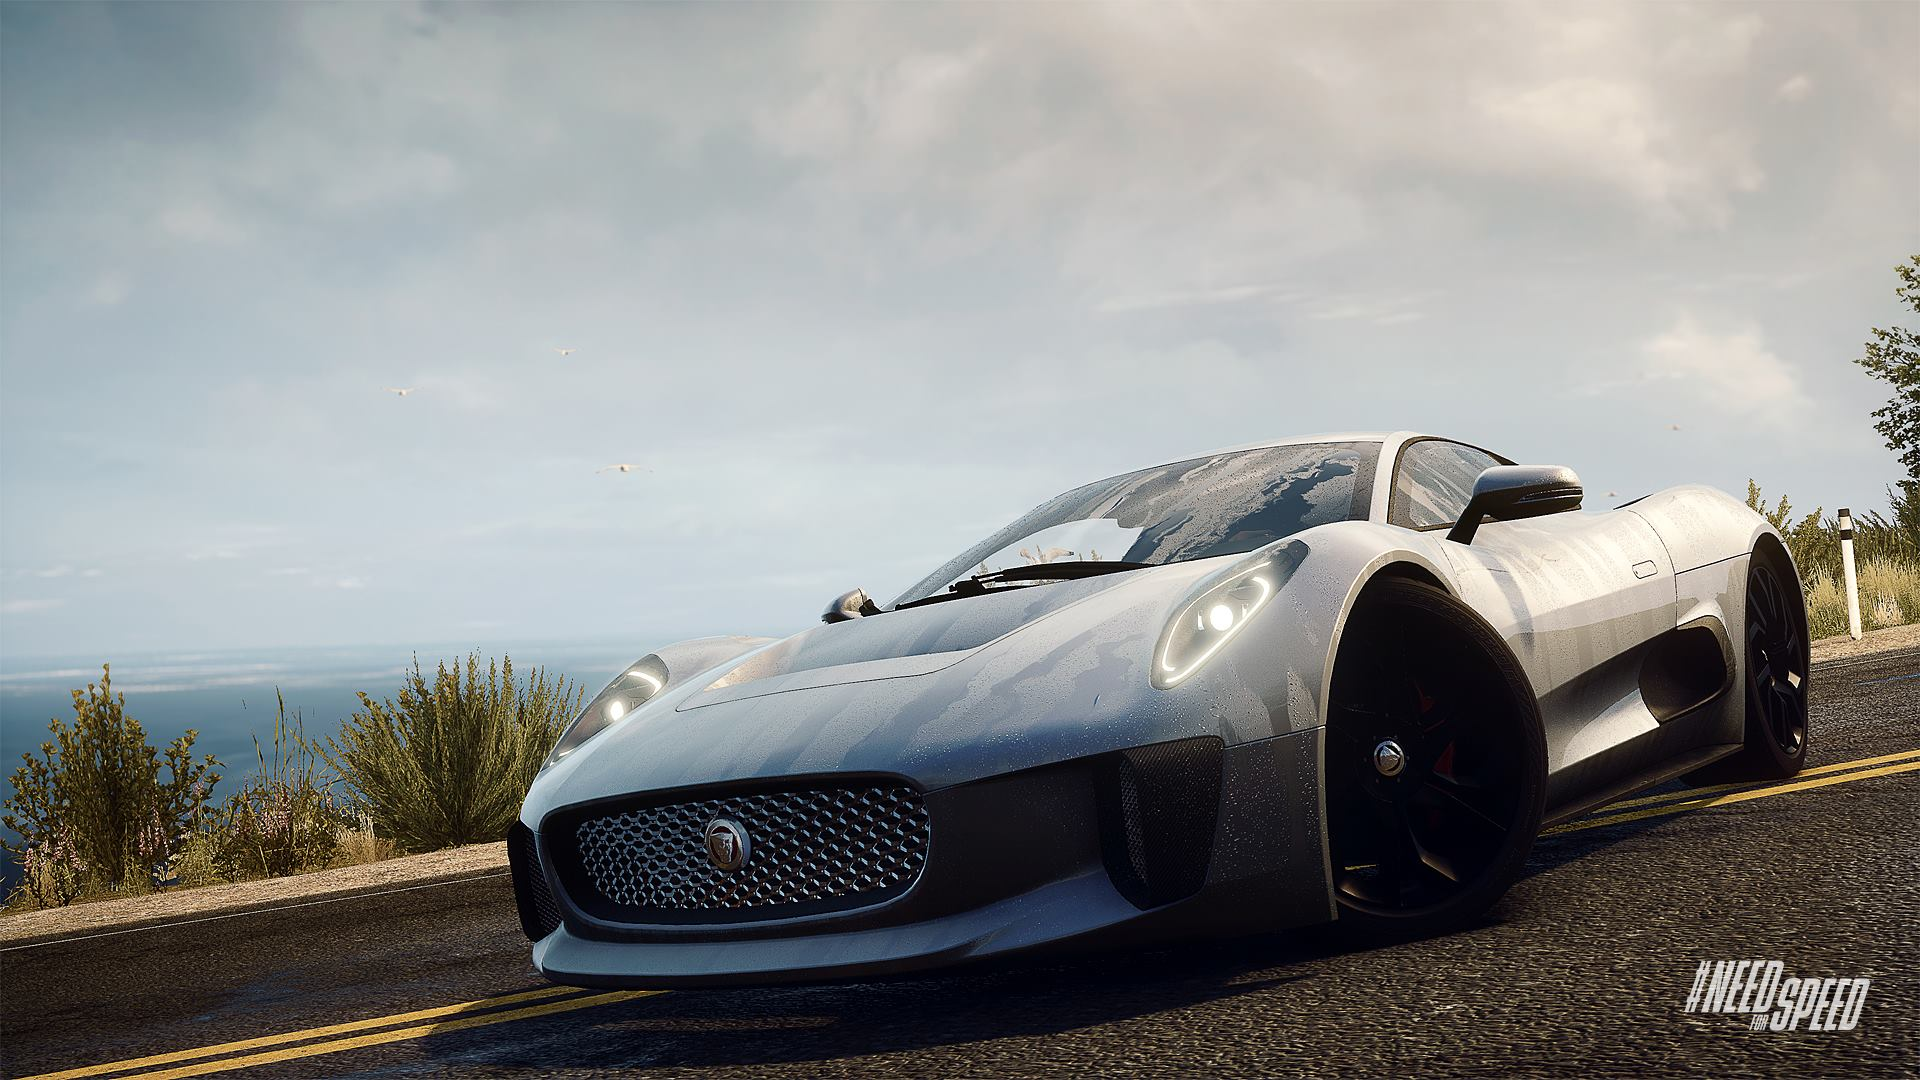 Ea Car Games For Pc